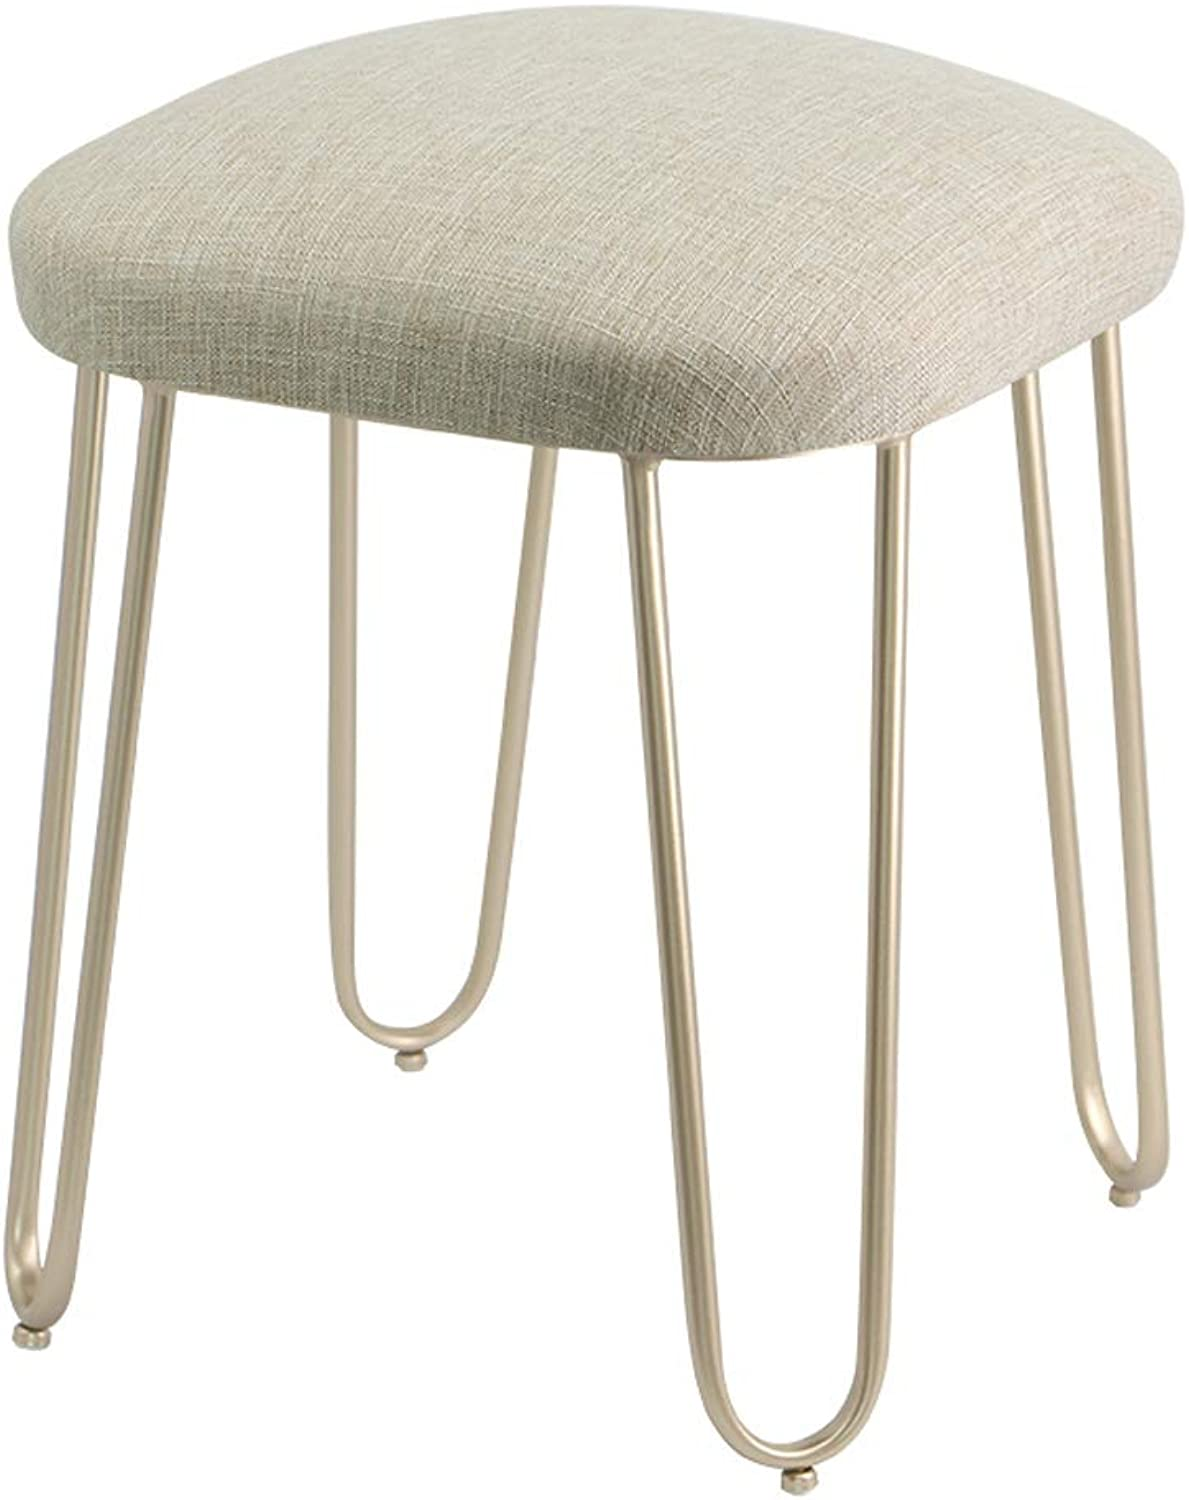 Fabric Stool Dressing Stool, Modern Household shoes Bench Simple Coffee Table Stool, Suitable for Living Room, Bedroom, Dining Room (Khaki)